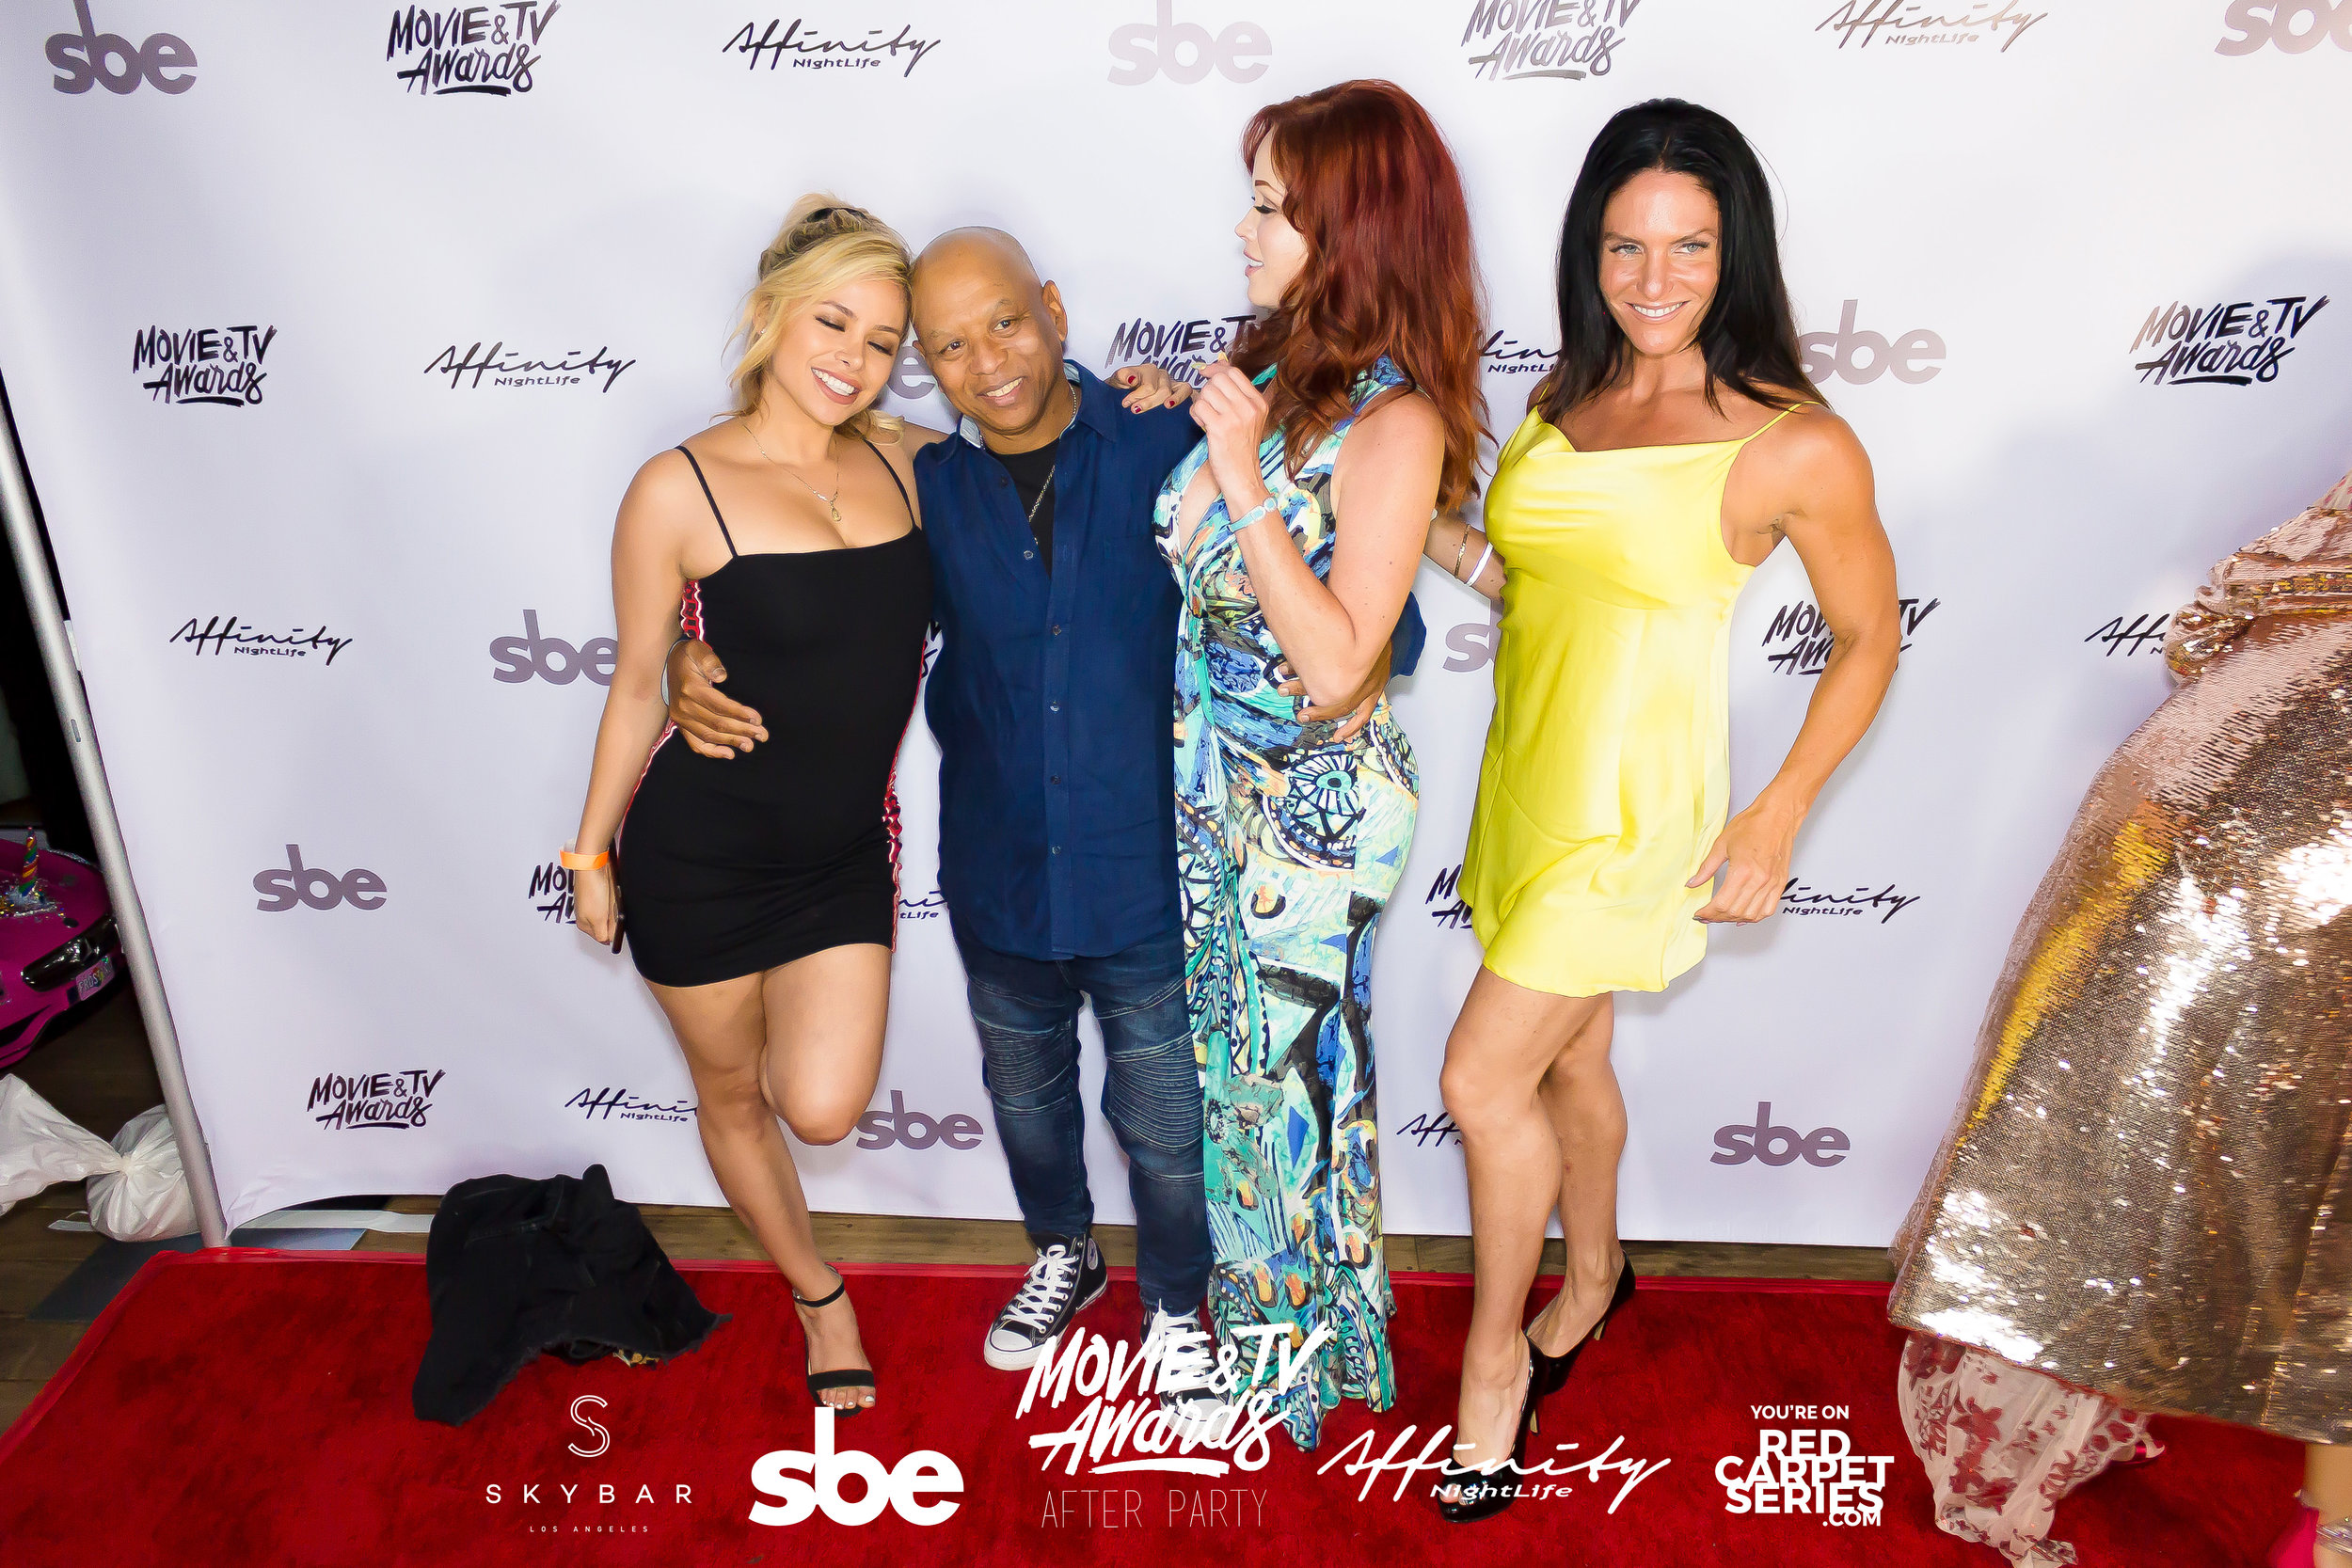 Affinity Nightlife MTV Movie & TV Awards After Party - Skybar at Mondrian - 06-15-19 - Vol. 2_21.jpg